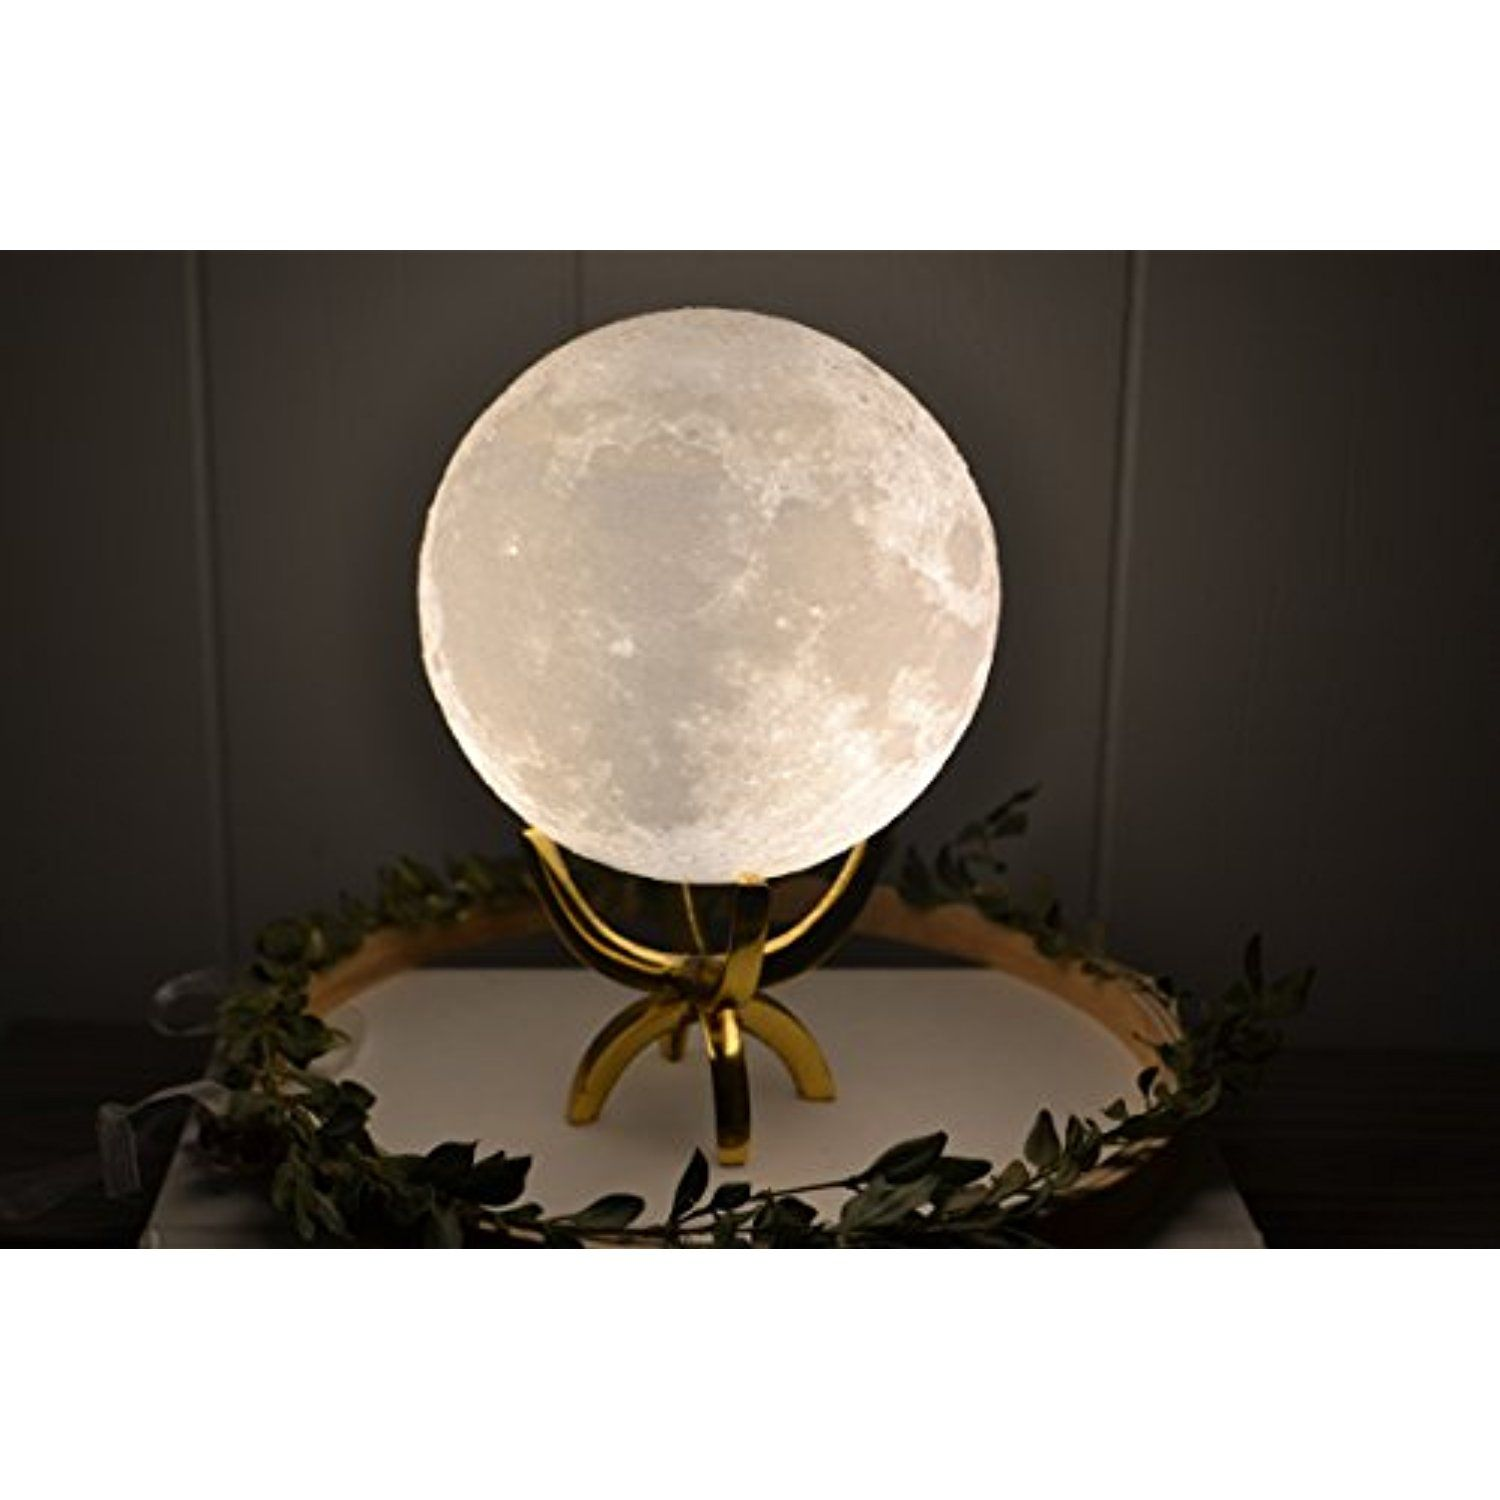 Led Moon Lamp 3d Printing Night Light Best Nursery Gift For Baby Shower Kids Girl Boy Or Mom Dimmable Touch Control Unique Baby Shower Gifts Decor Metal Decor